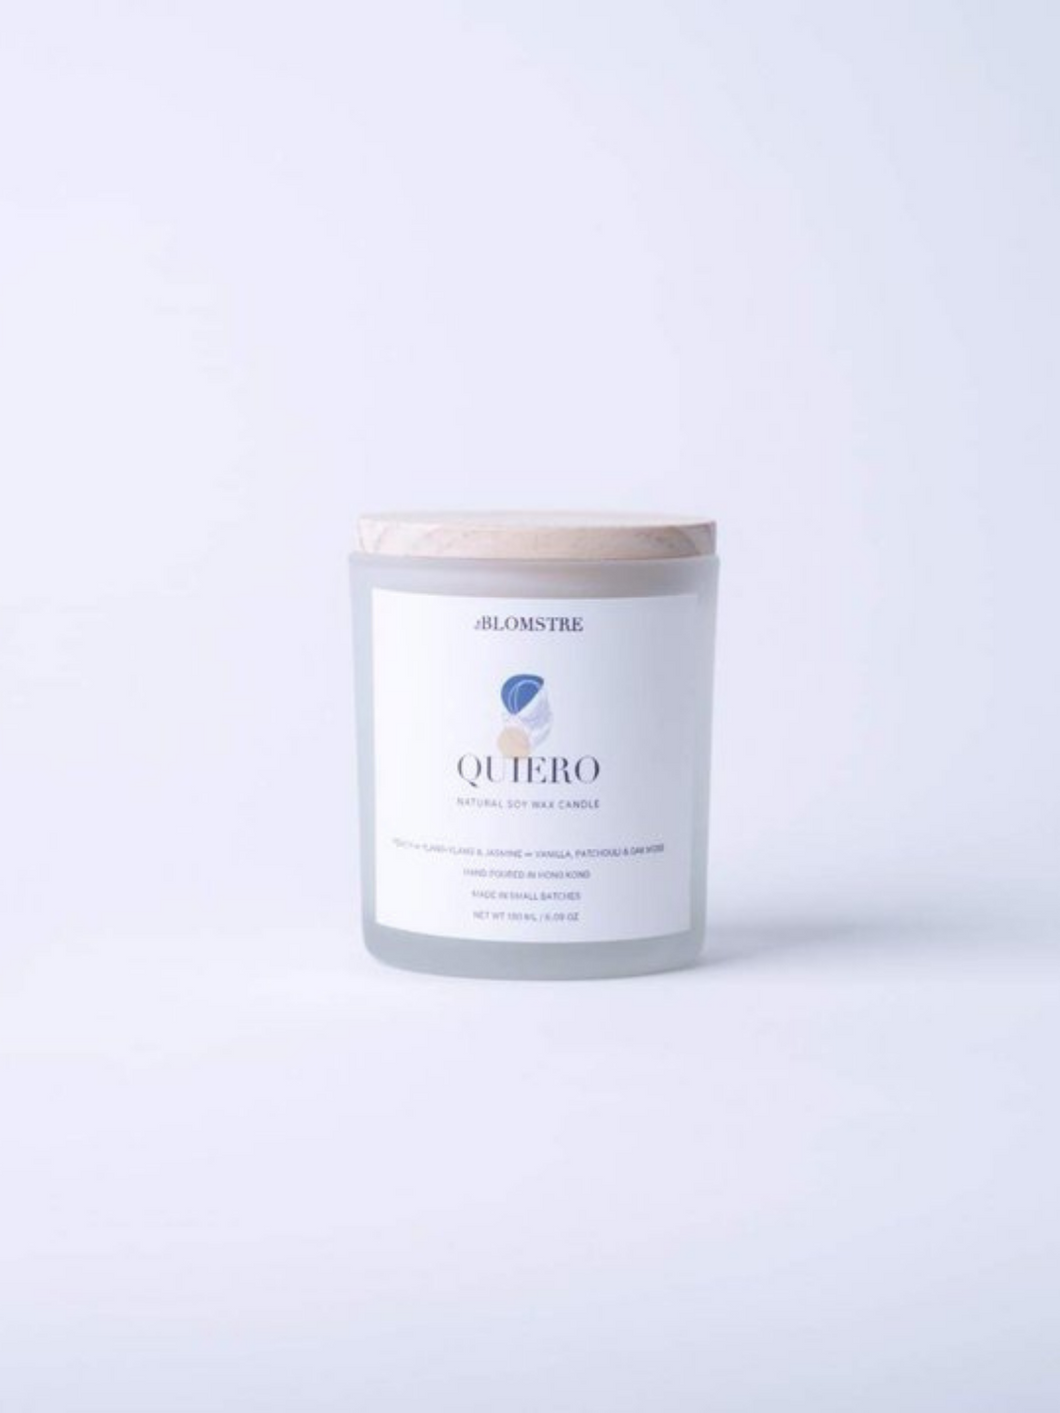 100% natural soy wax candle scented with essential oils handpoured in small batches